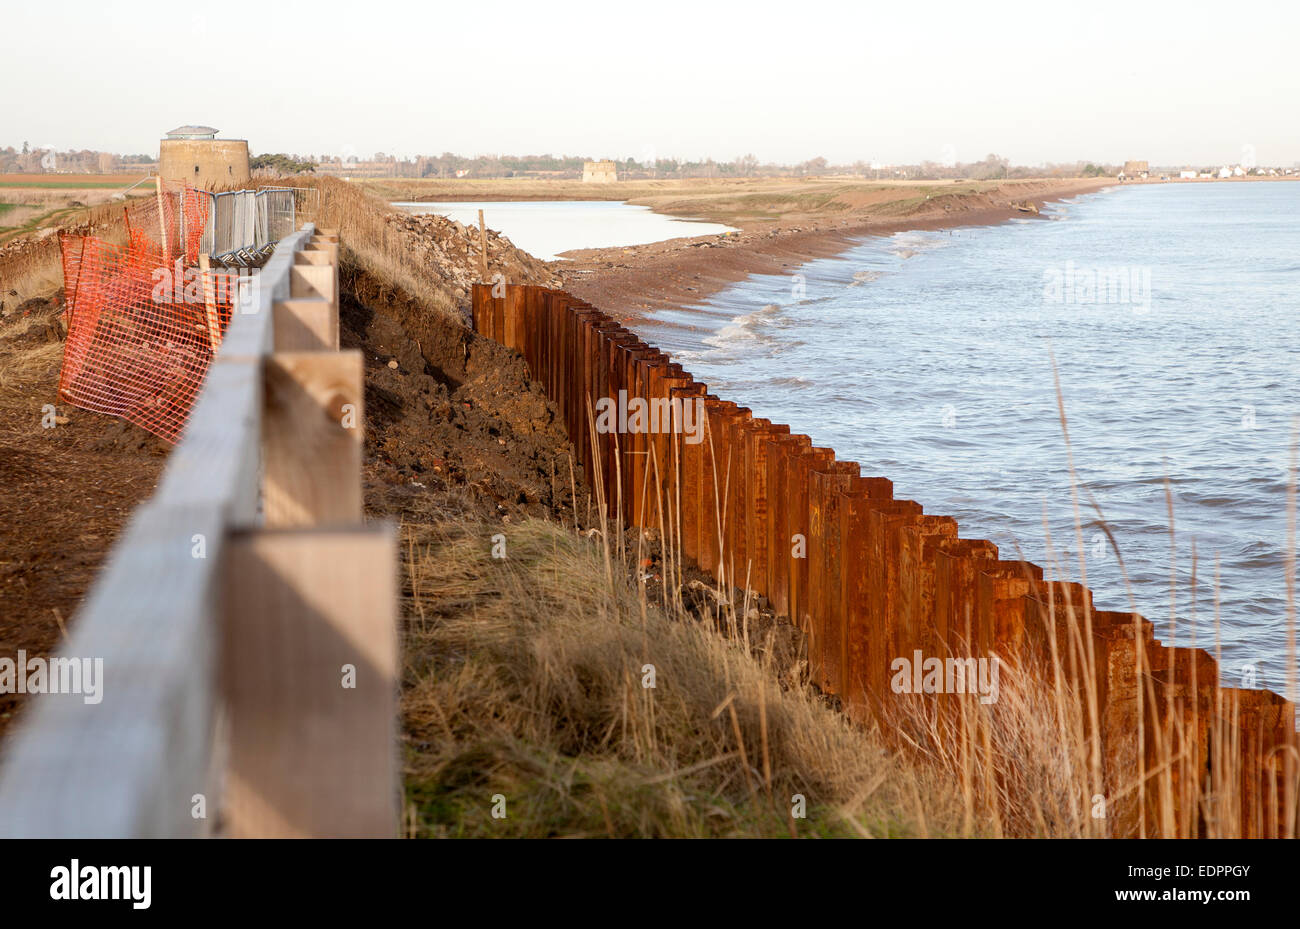 Steel sheet piling constructed as a coastal defence against rapid erosion at East Lane, Bawdsey, Suffolk, England, - Stock Image